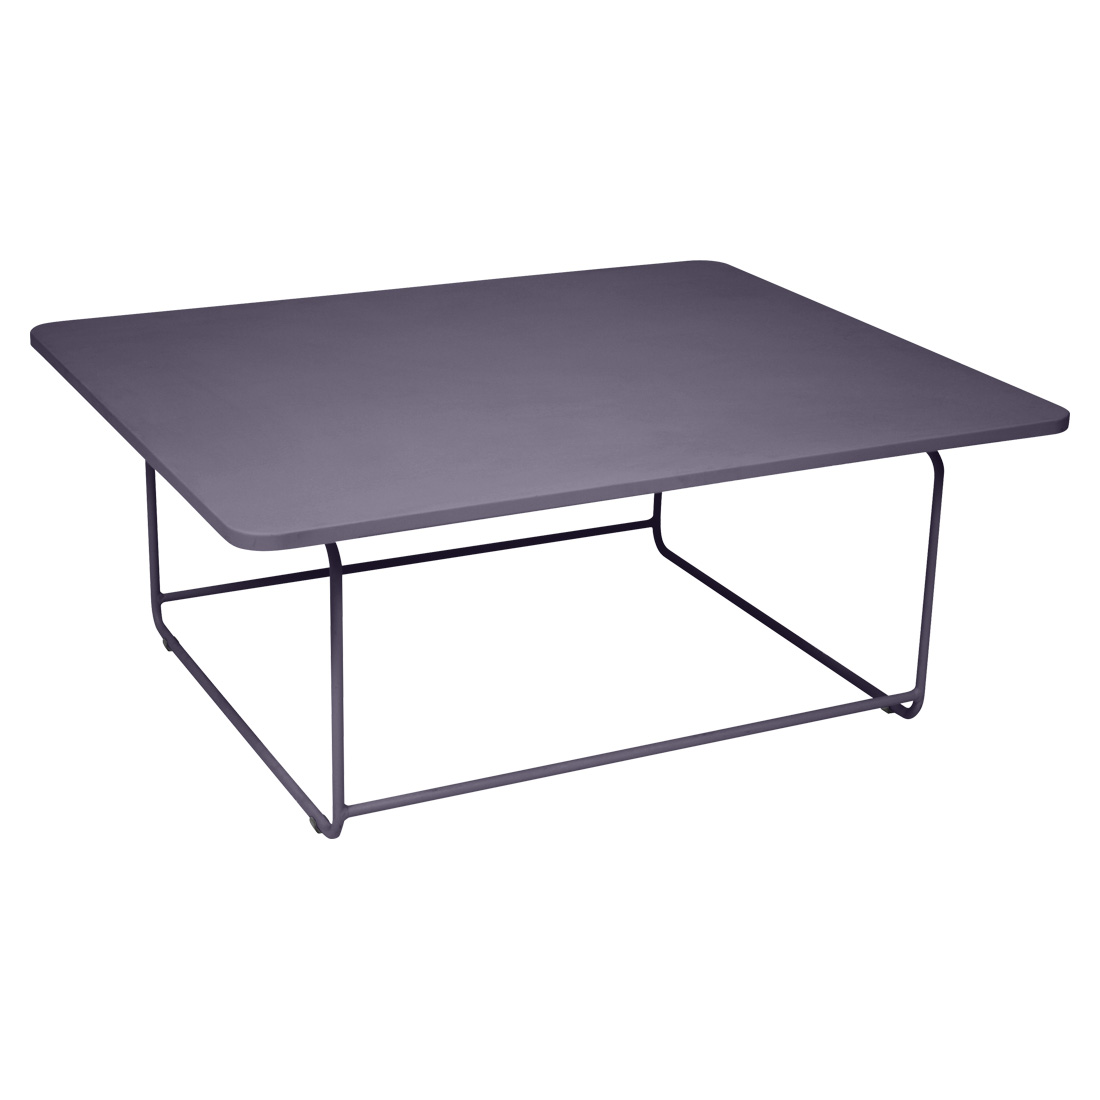 Ellipse low table by Fermob and available from le petit jardin